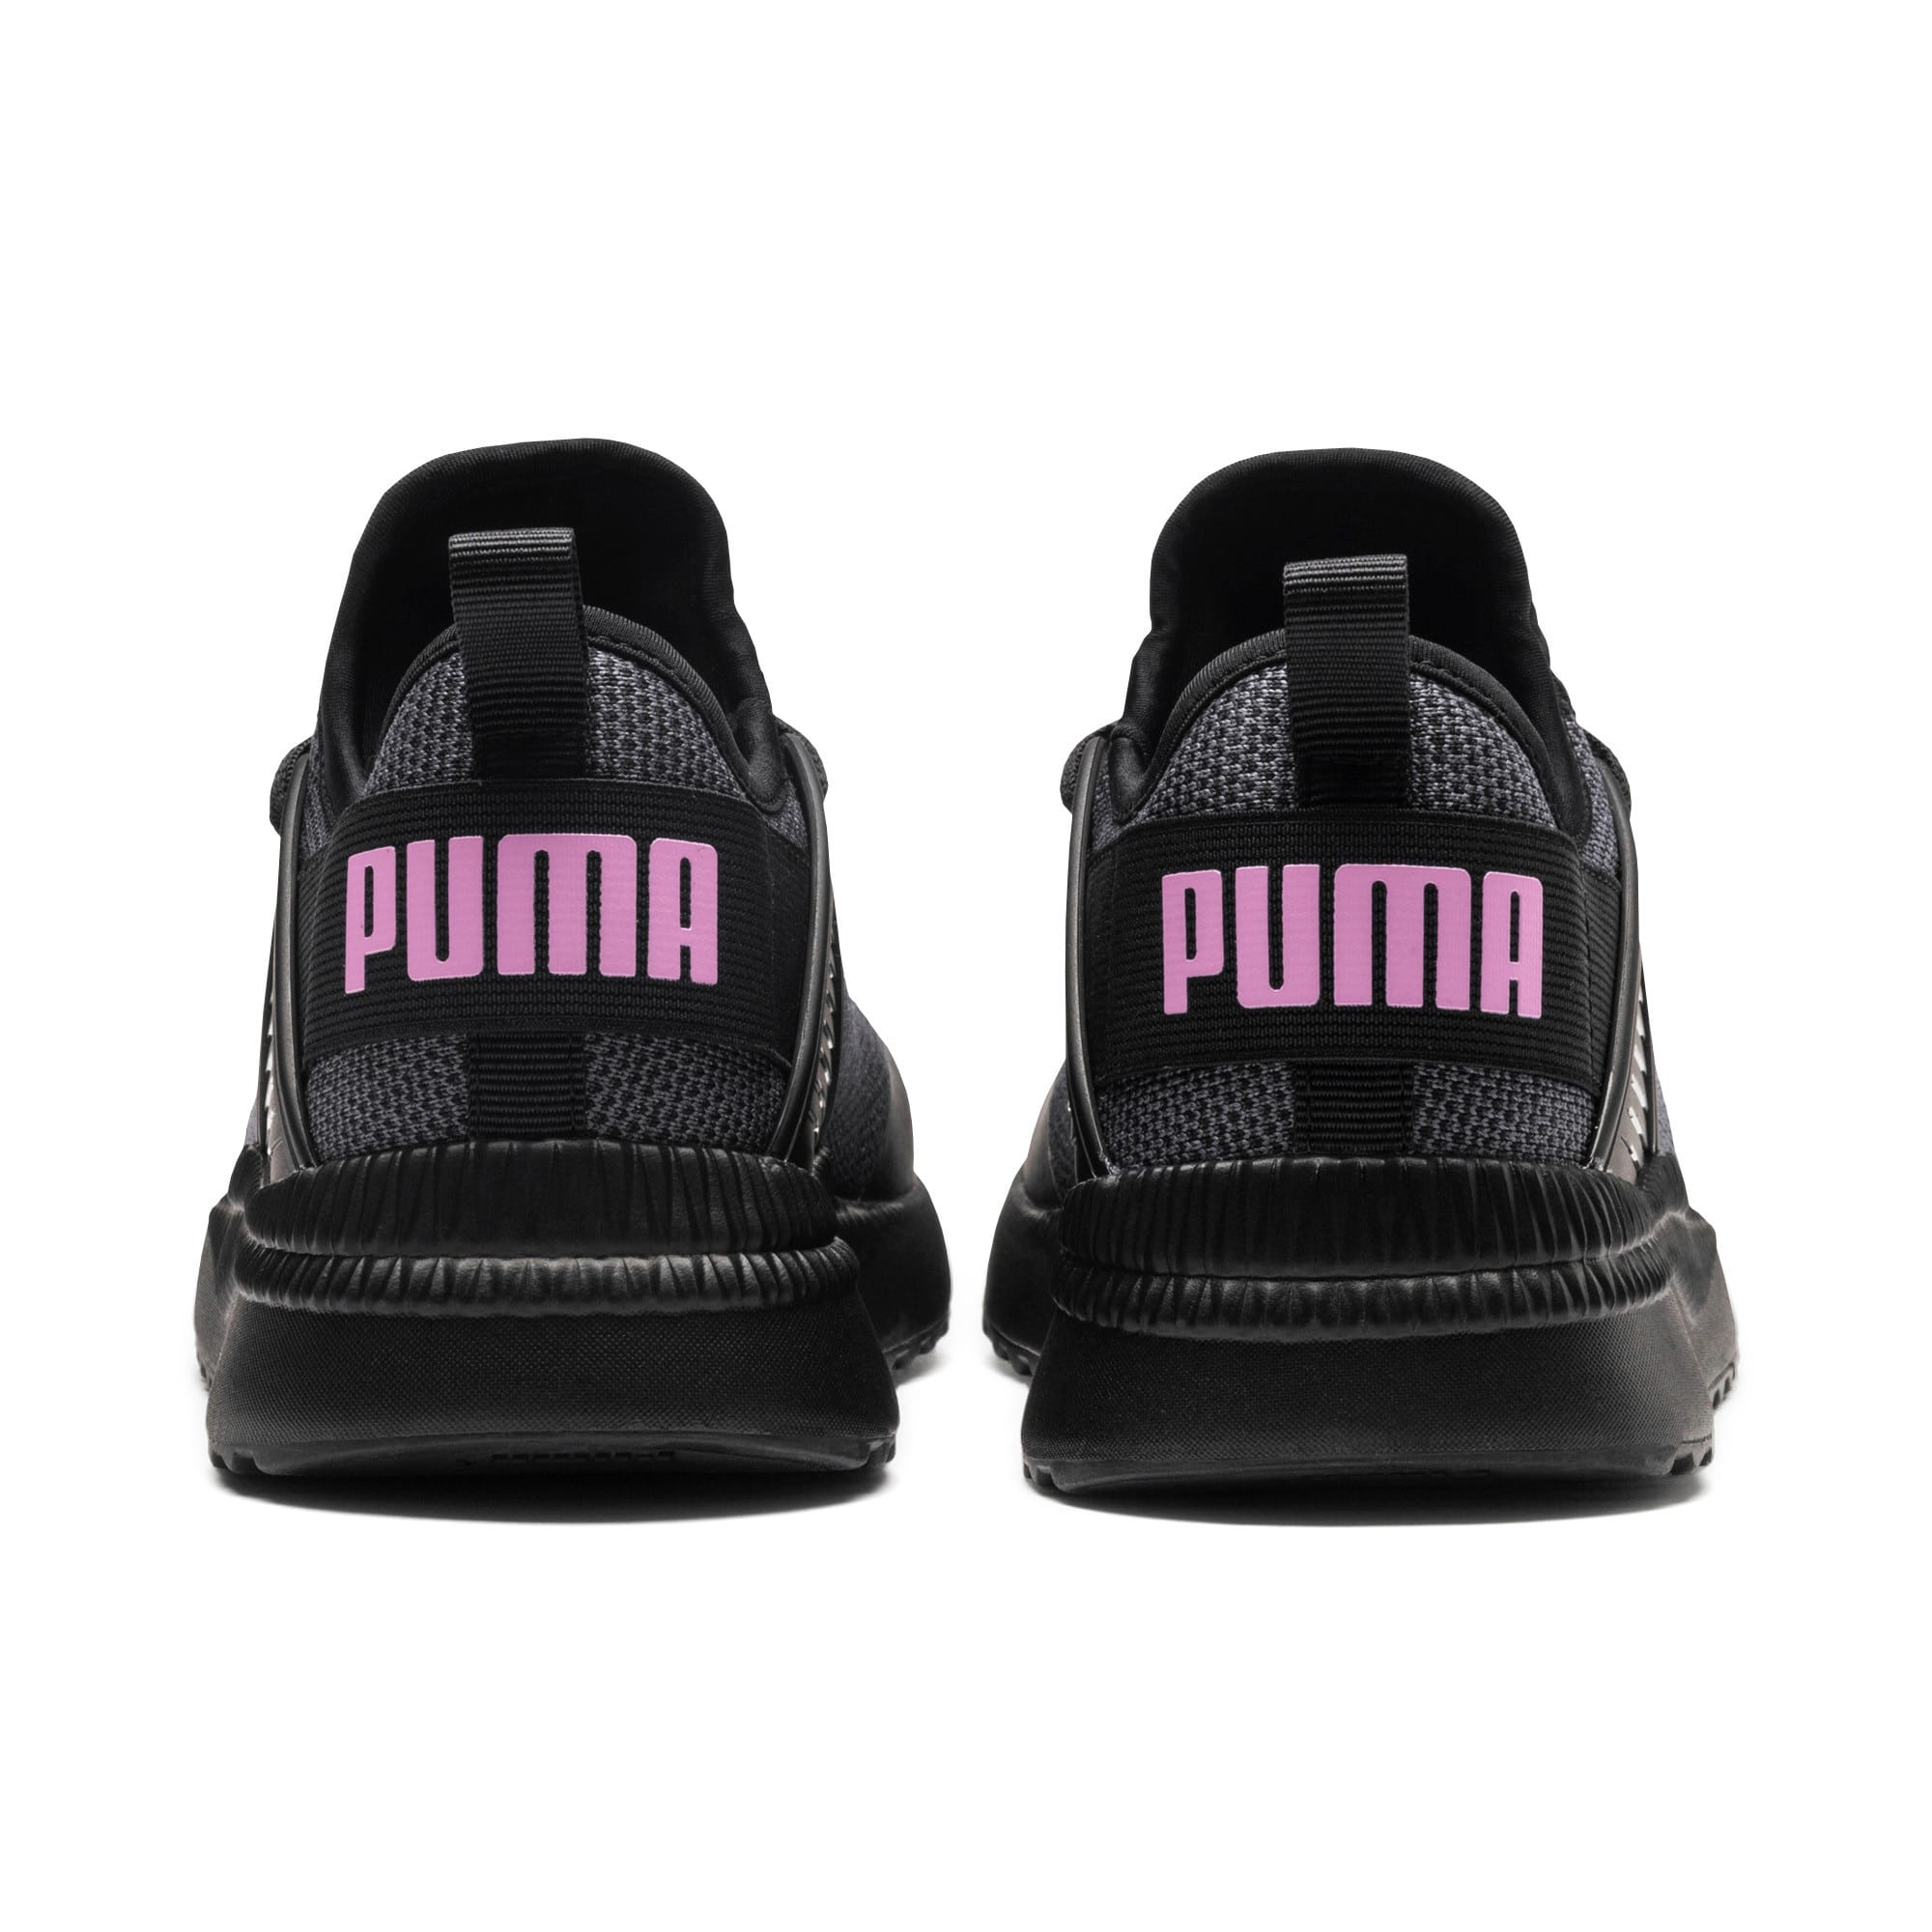 Thumbnail 2 of Pacer Next Cage Knit Kids' Trainers, Puma Black-Puma Black-Orchid, medium-IND